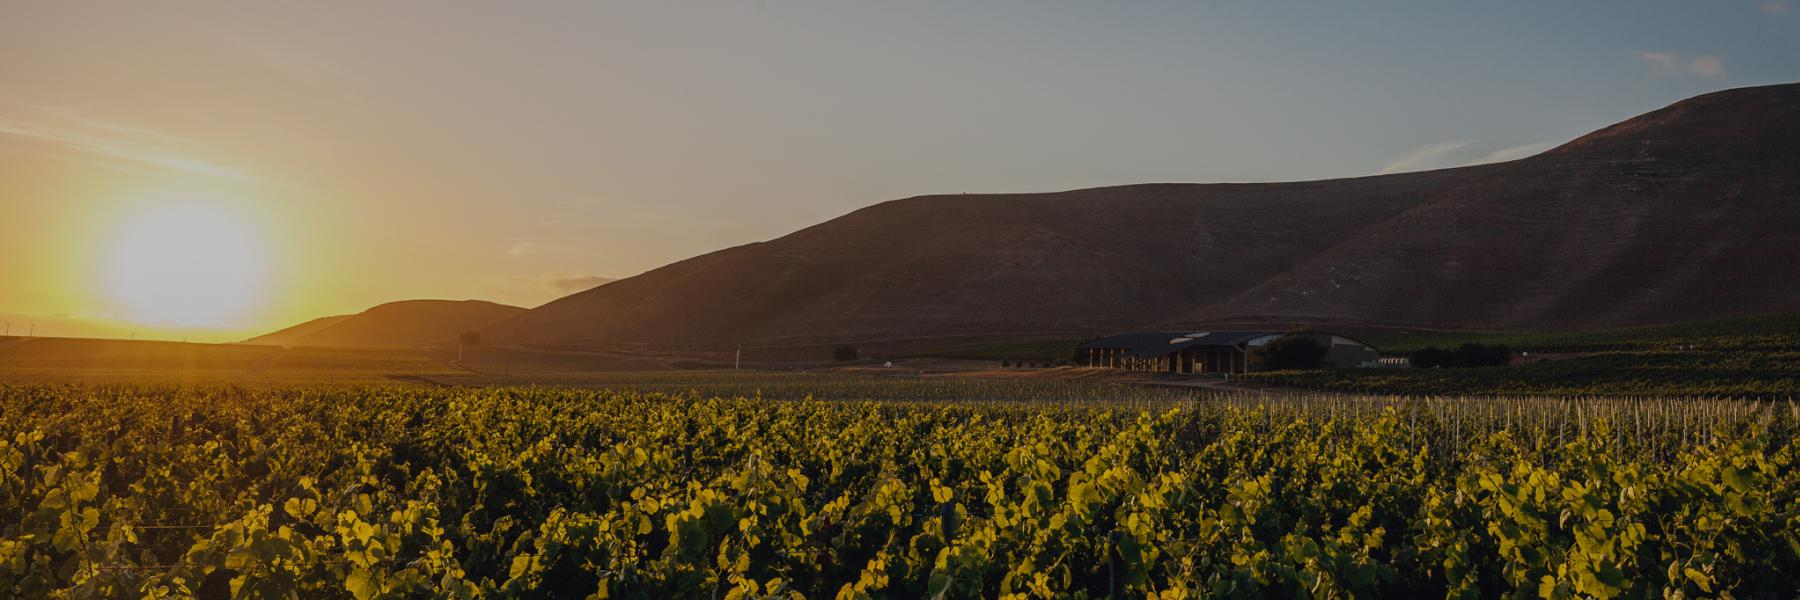 Byron vineyard, Santa Maria, Santa Barbara county, California